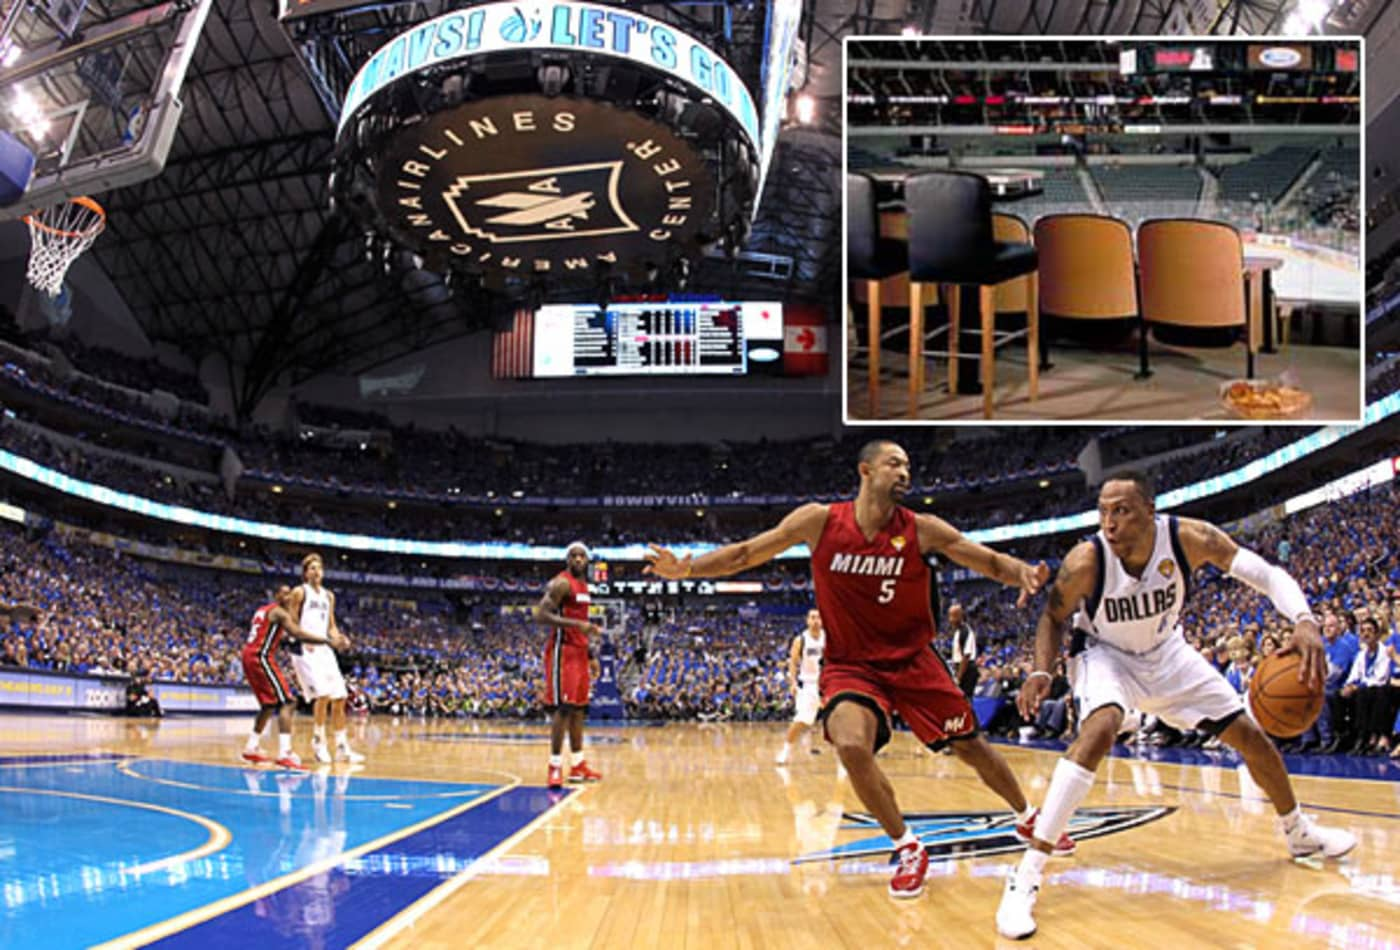 NBA-FInals-American-Airlines-Dallas-Most-Expensive-Luxury-Suites-CNBC..jpg